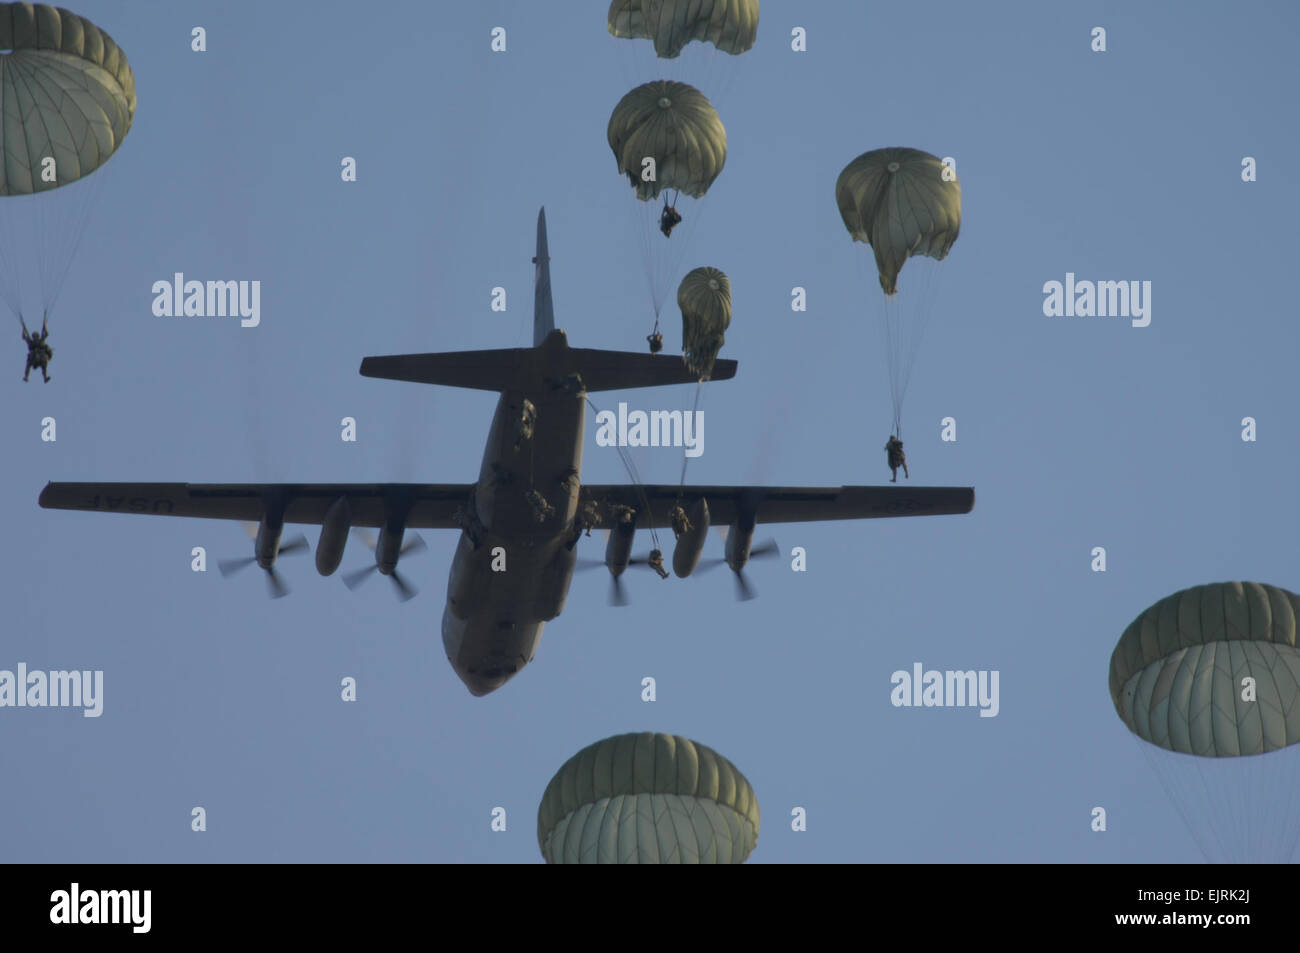 Parachute Infantry Regiment, 82nd Airborne Division Parachute Out Of A  Us Air Force C130 Hercules Aircraft At Night During A Joint Forcible  Entry